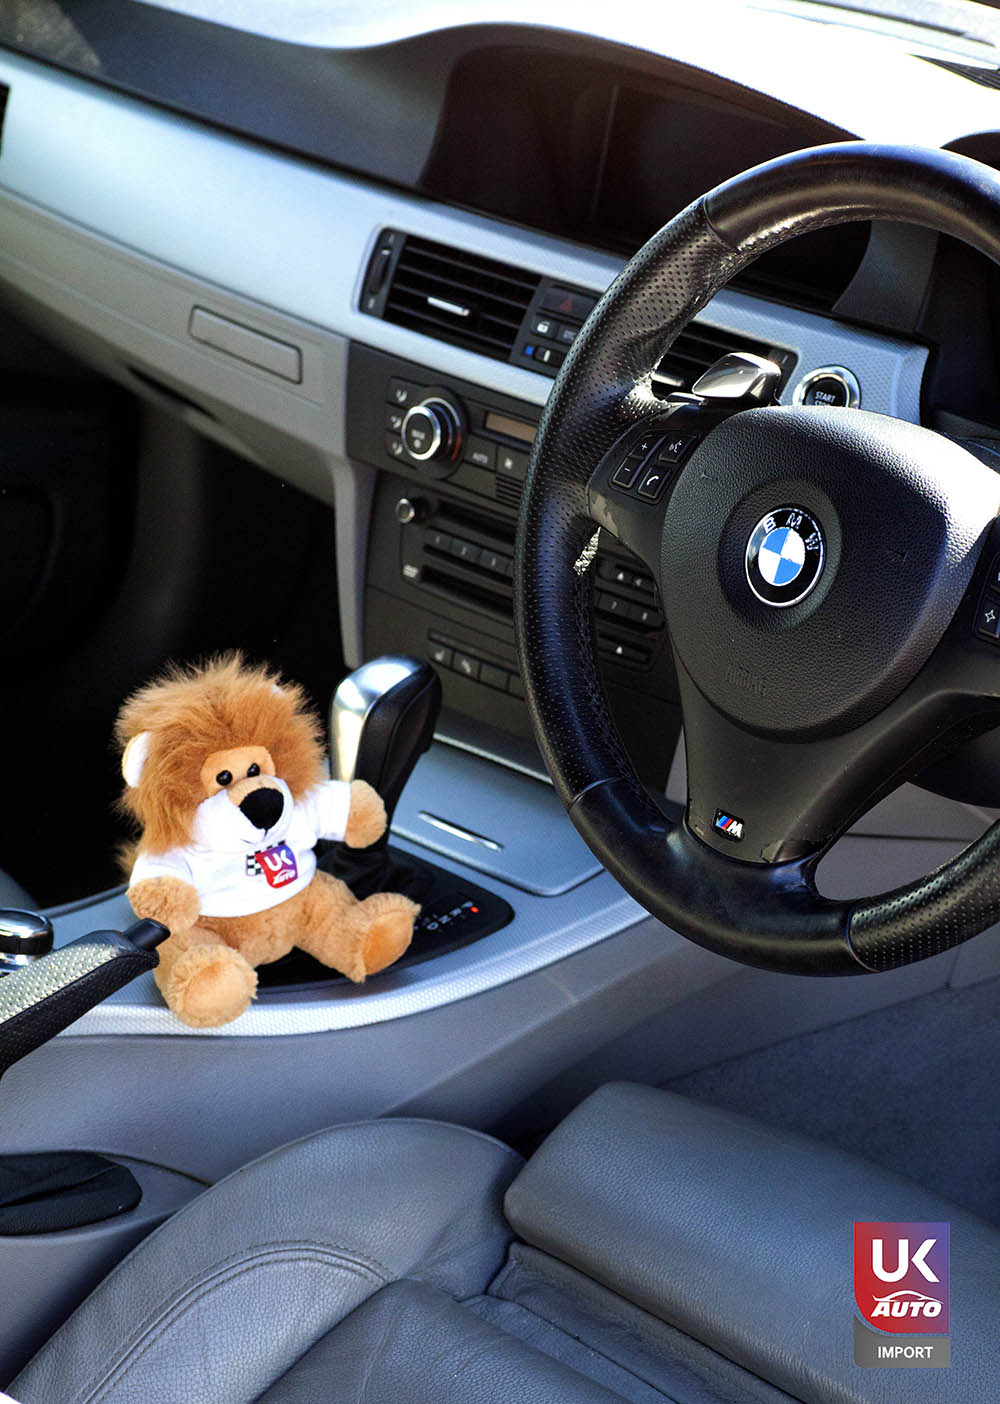 IMG 2843 - Import BMW 330I RHD PACK M voiture anglaise occasion moins cher par ukauto.fr